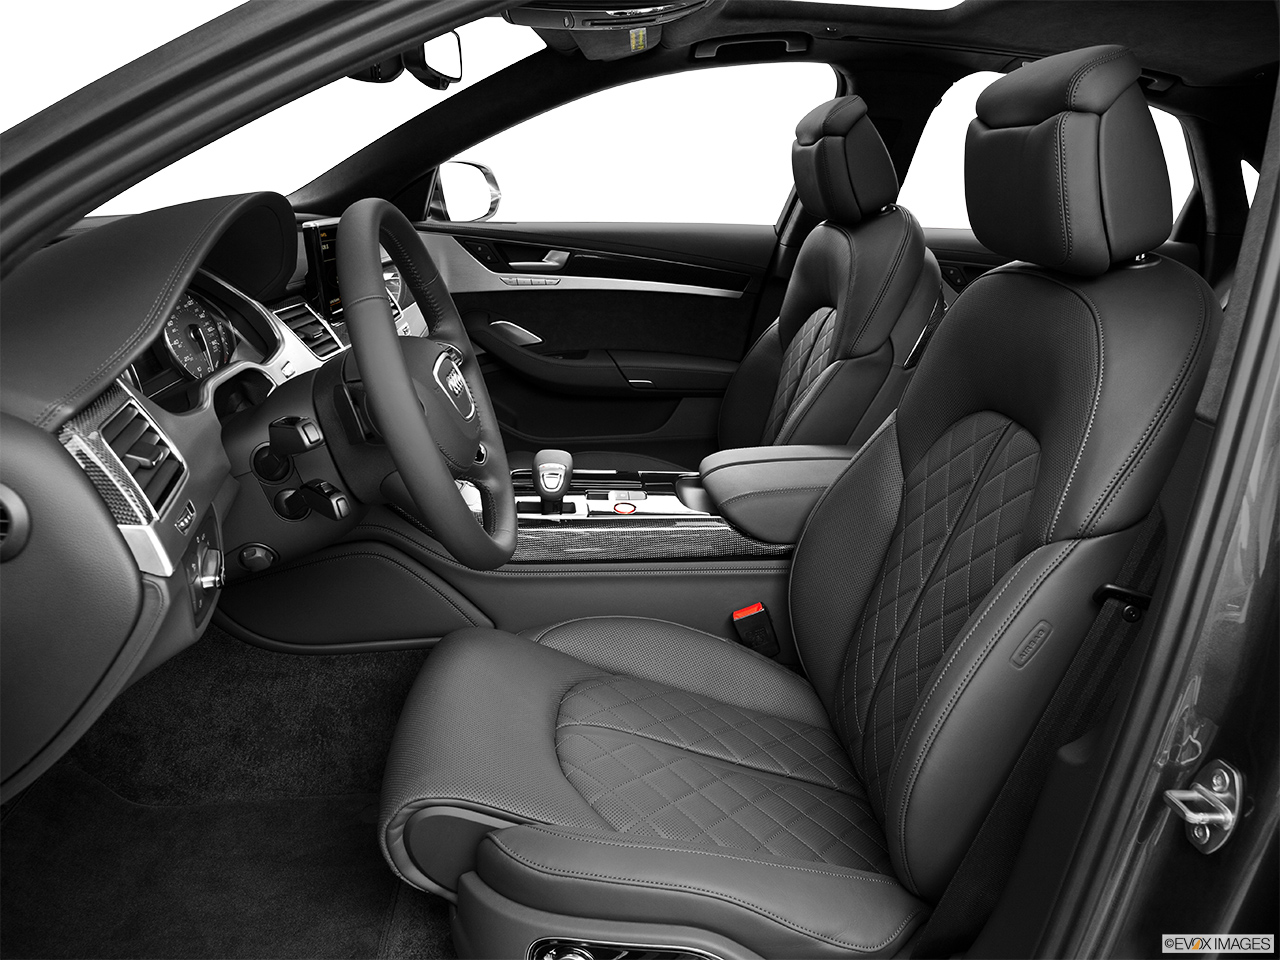 2014 Audi S8 4.0 TFSI Front seats from Drivers Side.